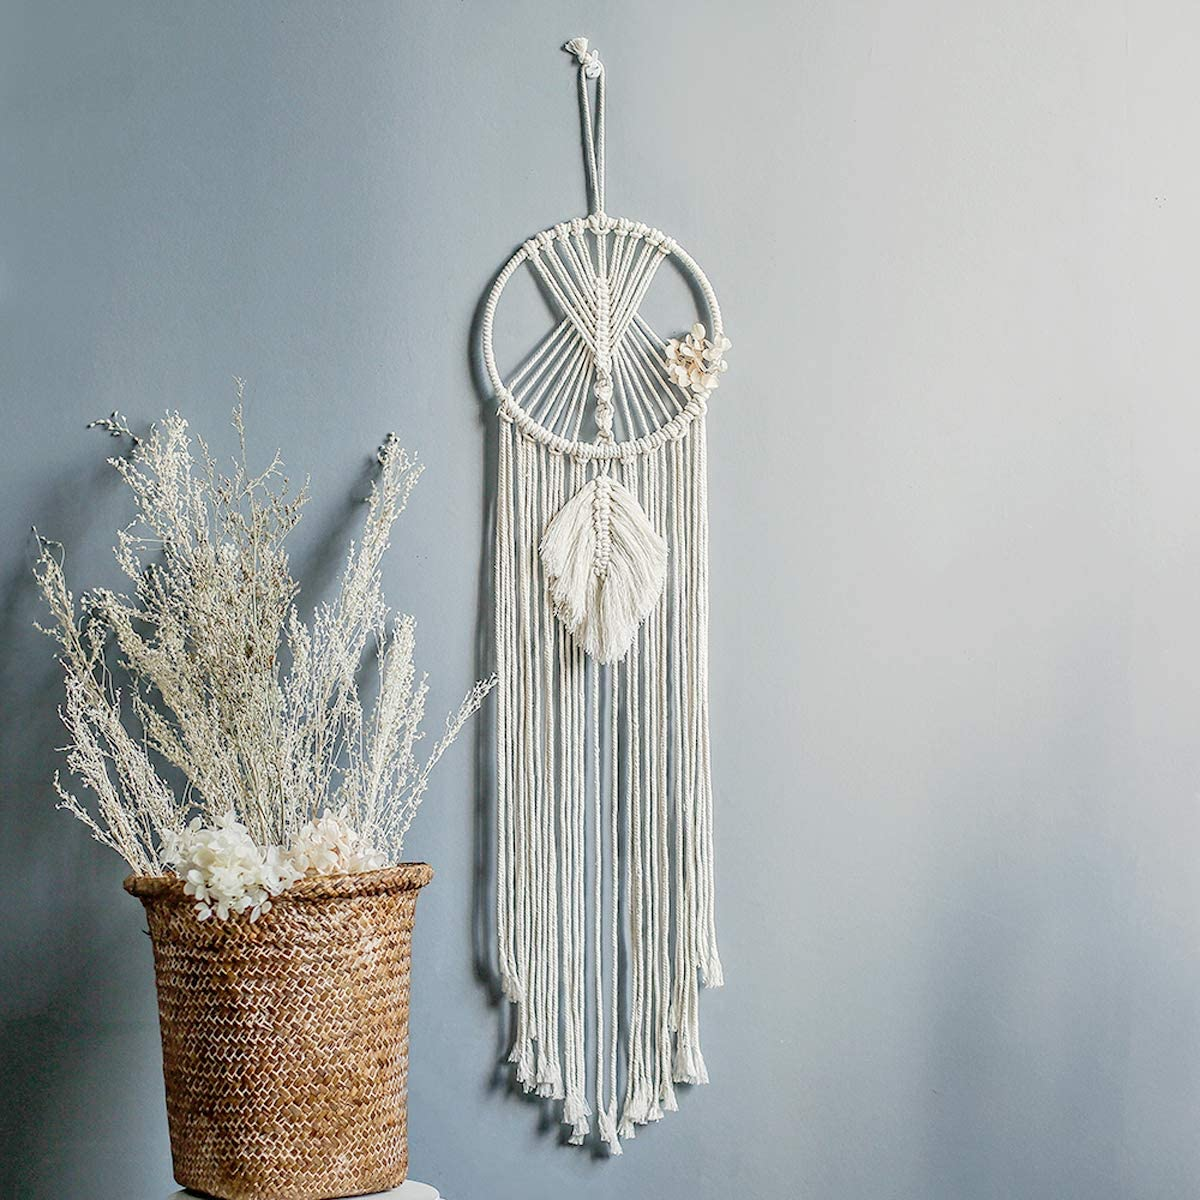 AWAYTR Macrame Dream Catchers Wall Hanging - Room Bedroom Wall Decor Boho Nursery Home Decorations Festival Gift,32